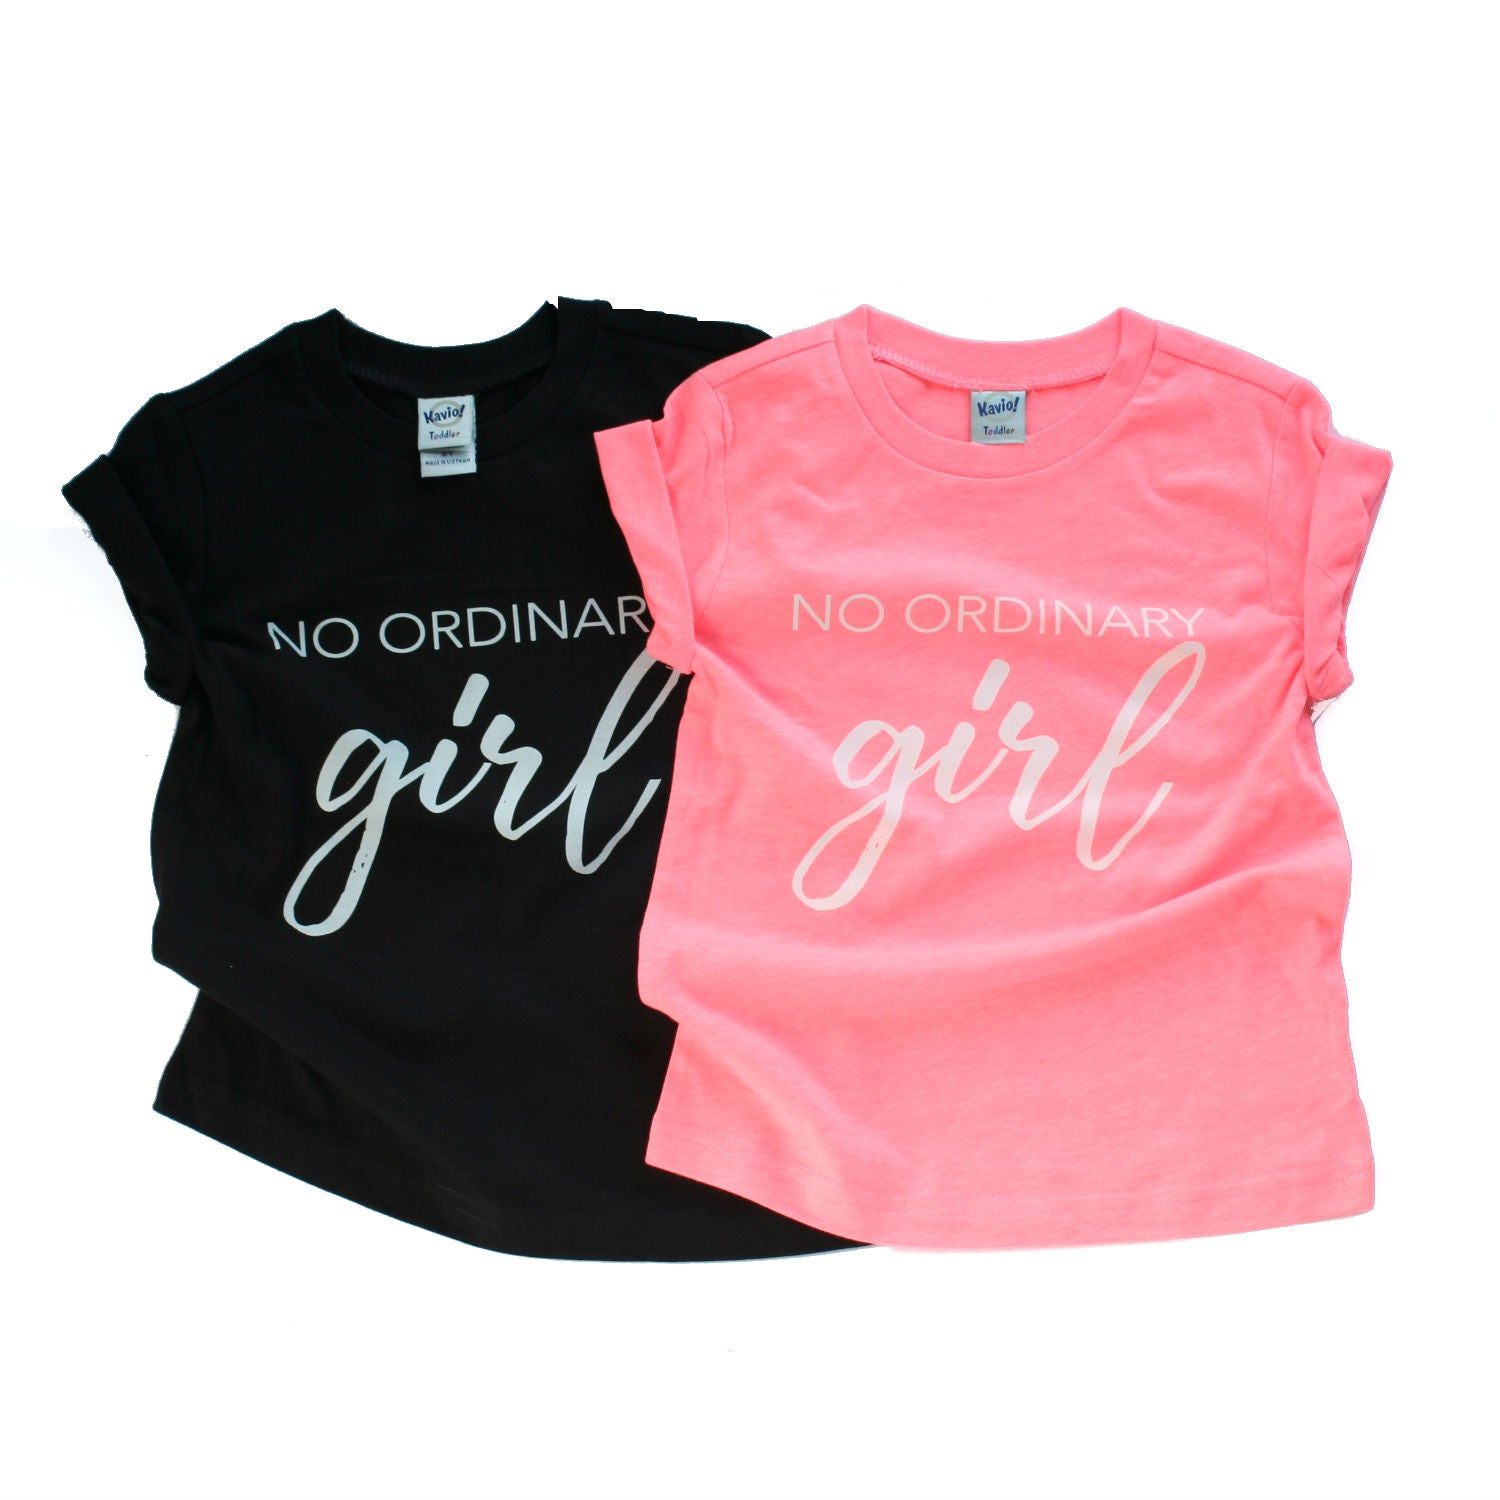 Tee - No Ordinary Girl - Multi-colors